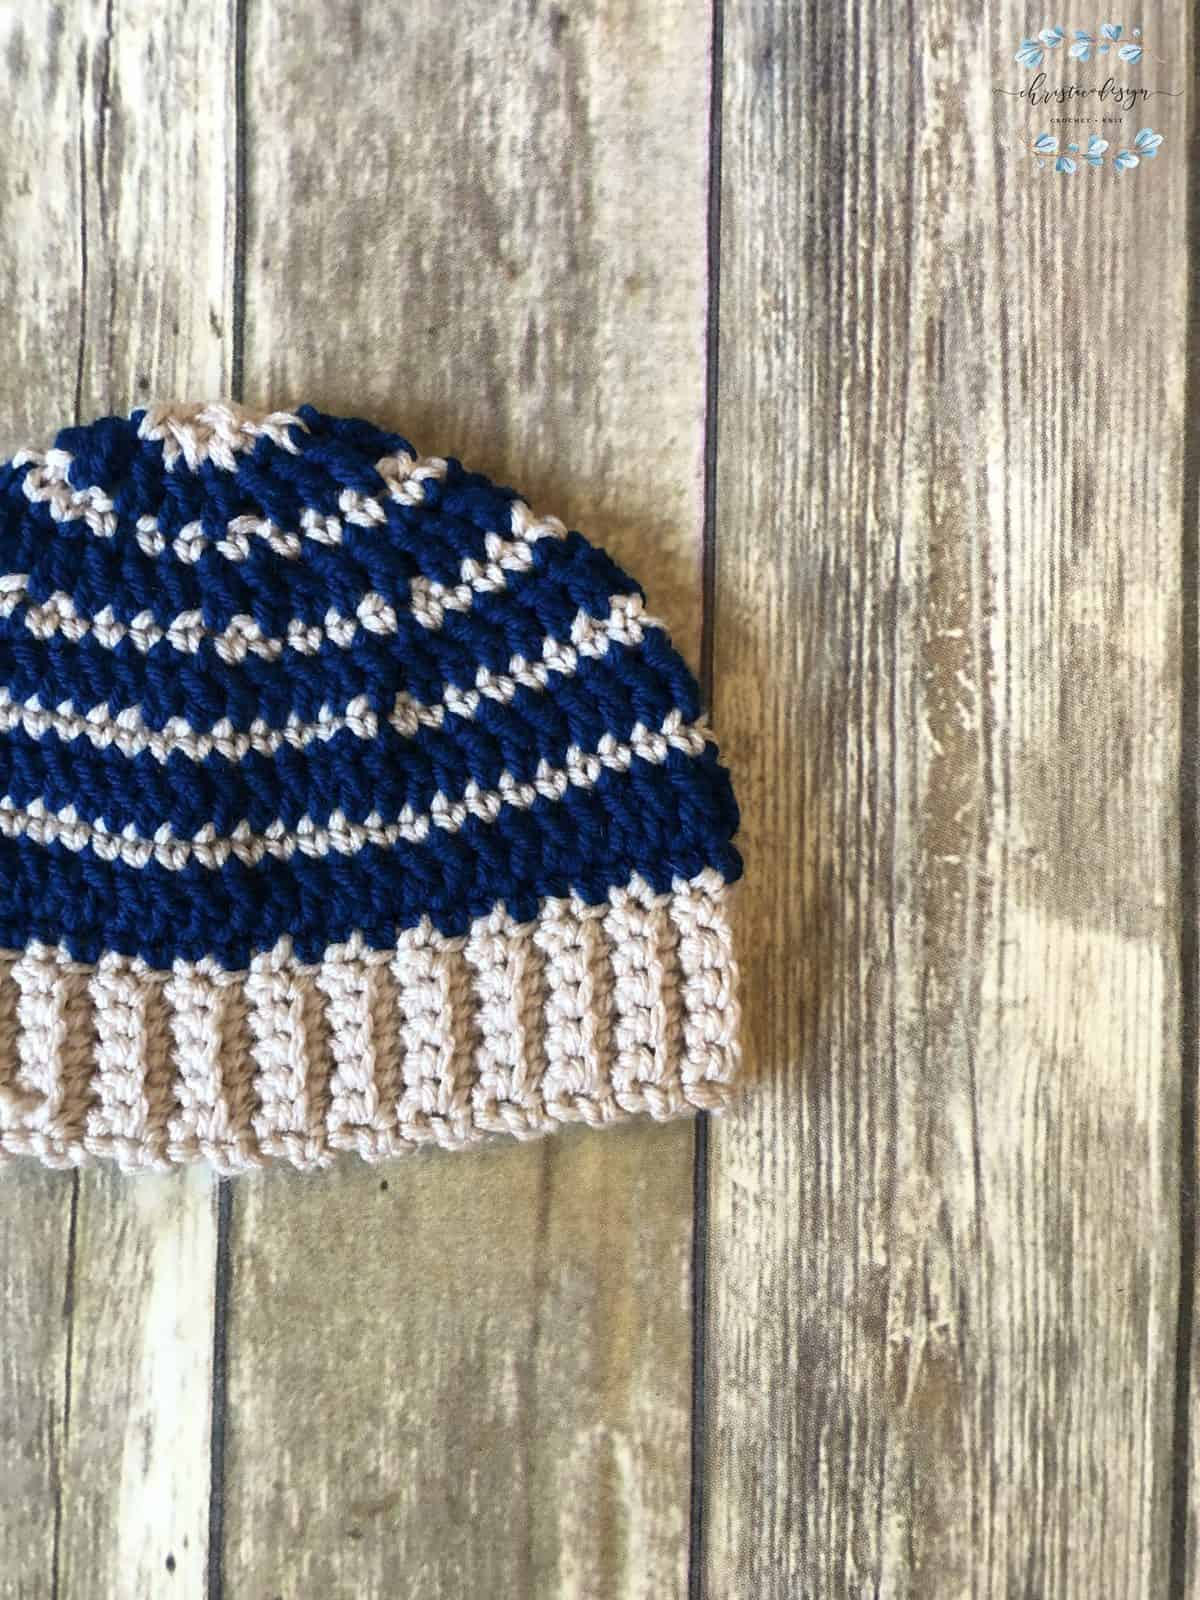 crochet bottom up hat with stripes of dark blue and stone grey